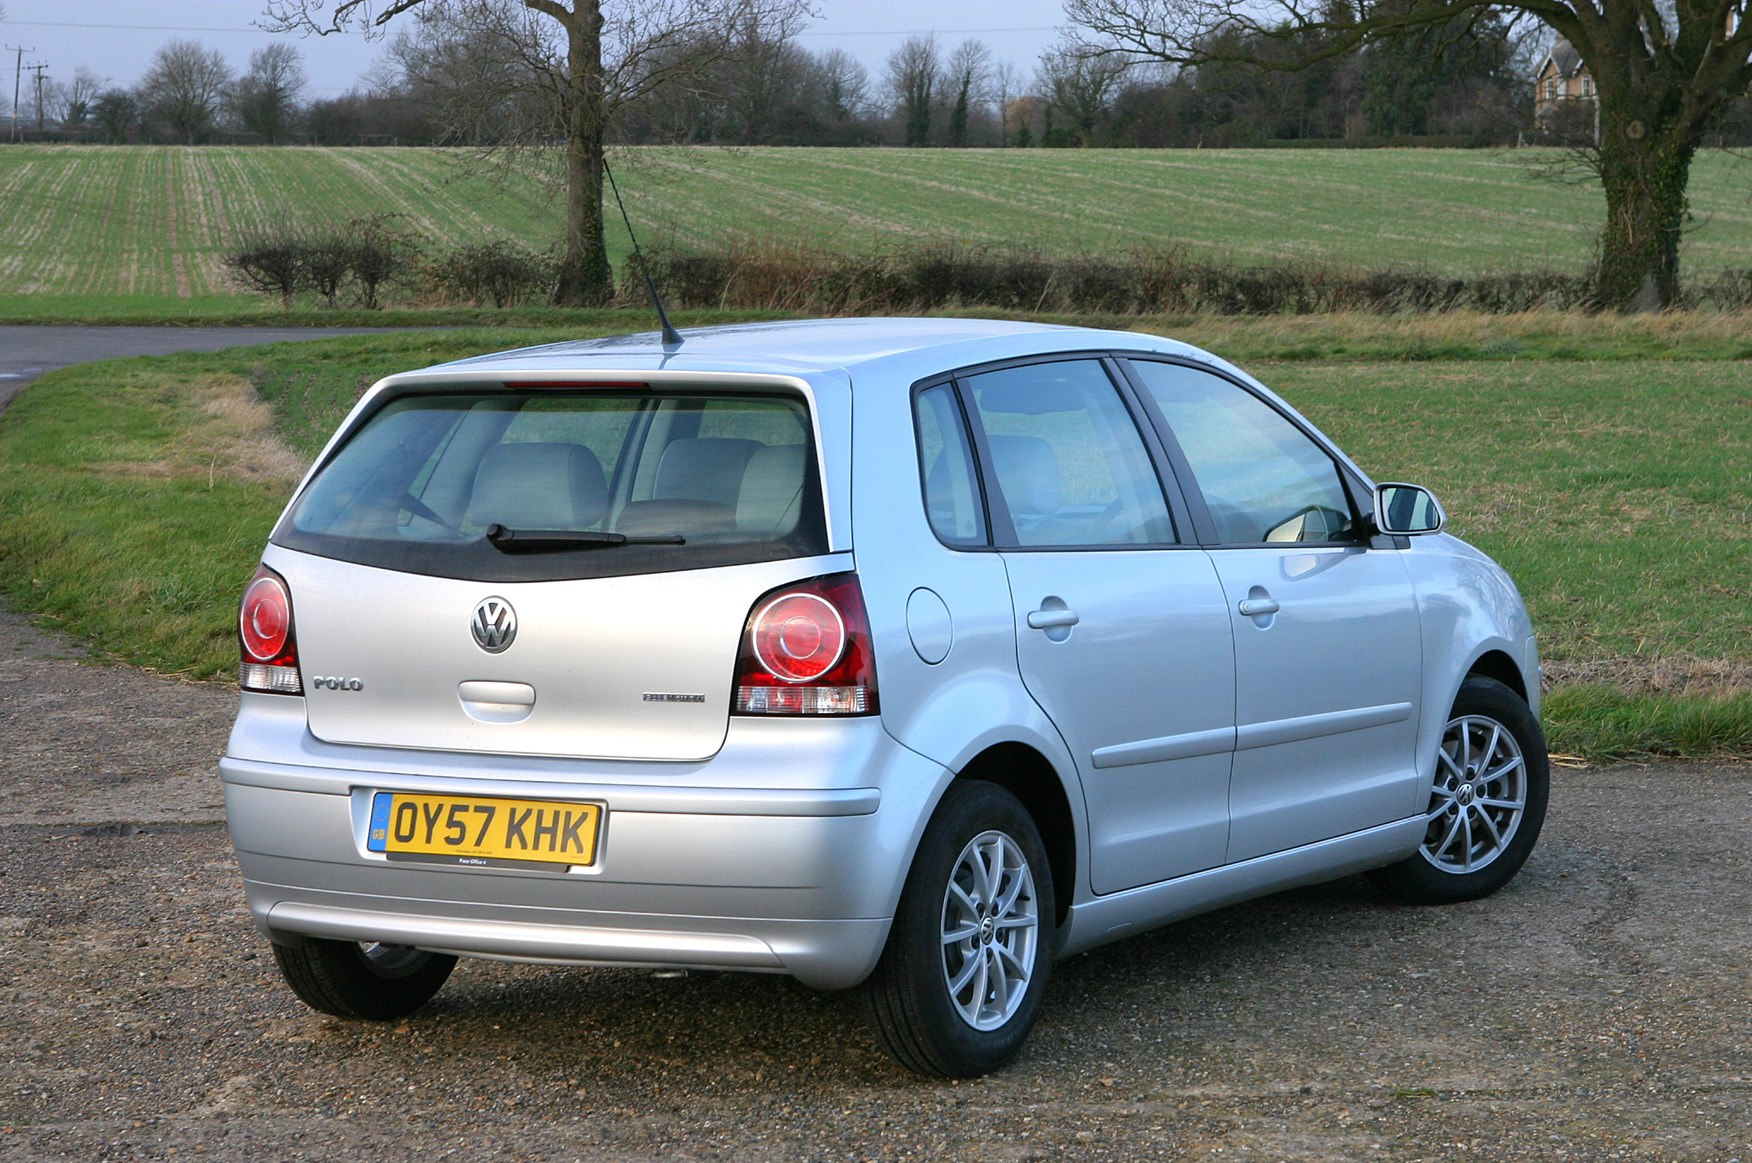 Volkswagen polo hatchback 2002 2009 features equipment and volkswagen polo hatchback 2002 2009 features equipment and accessories parkers publicscrutiny Choice Image